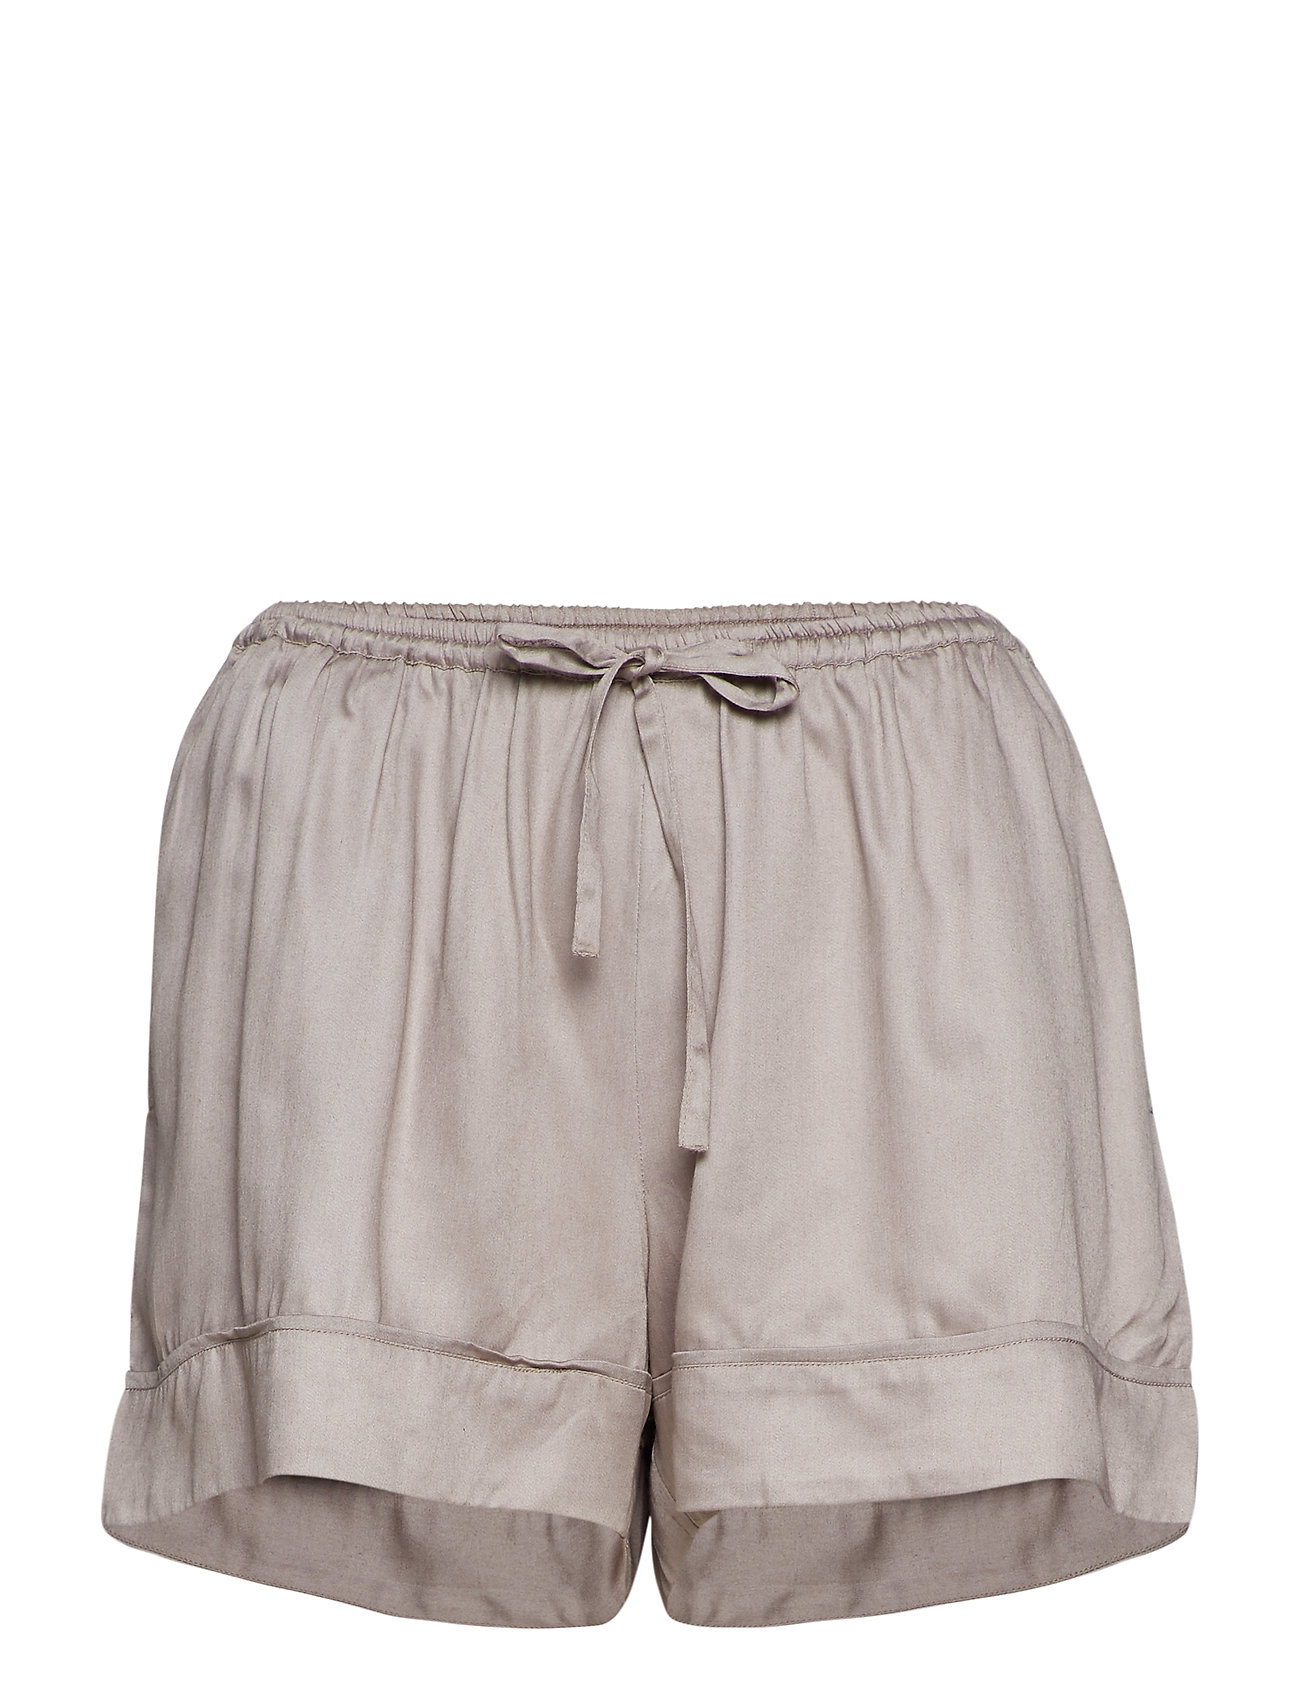 Rana Rana Rana ShortsgreyUnderprotection Rana ShortsgreyUnderprotection Rana Rana Rana ShortsgreyUnderprotection ShortsgreyUnderprotection ShortsgreyUnderprotection ShortsgreyUnderprotection ShortsgreyUnderprotection ShortsgreyUnderprotection Rana Rana 9W2IDEH